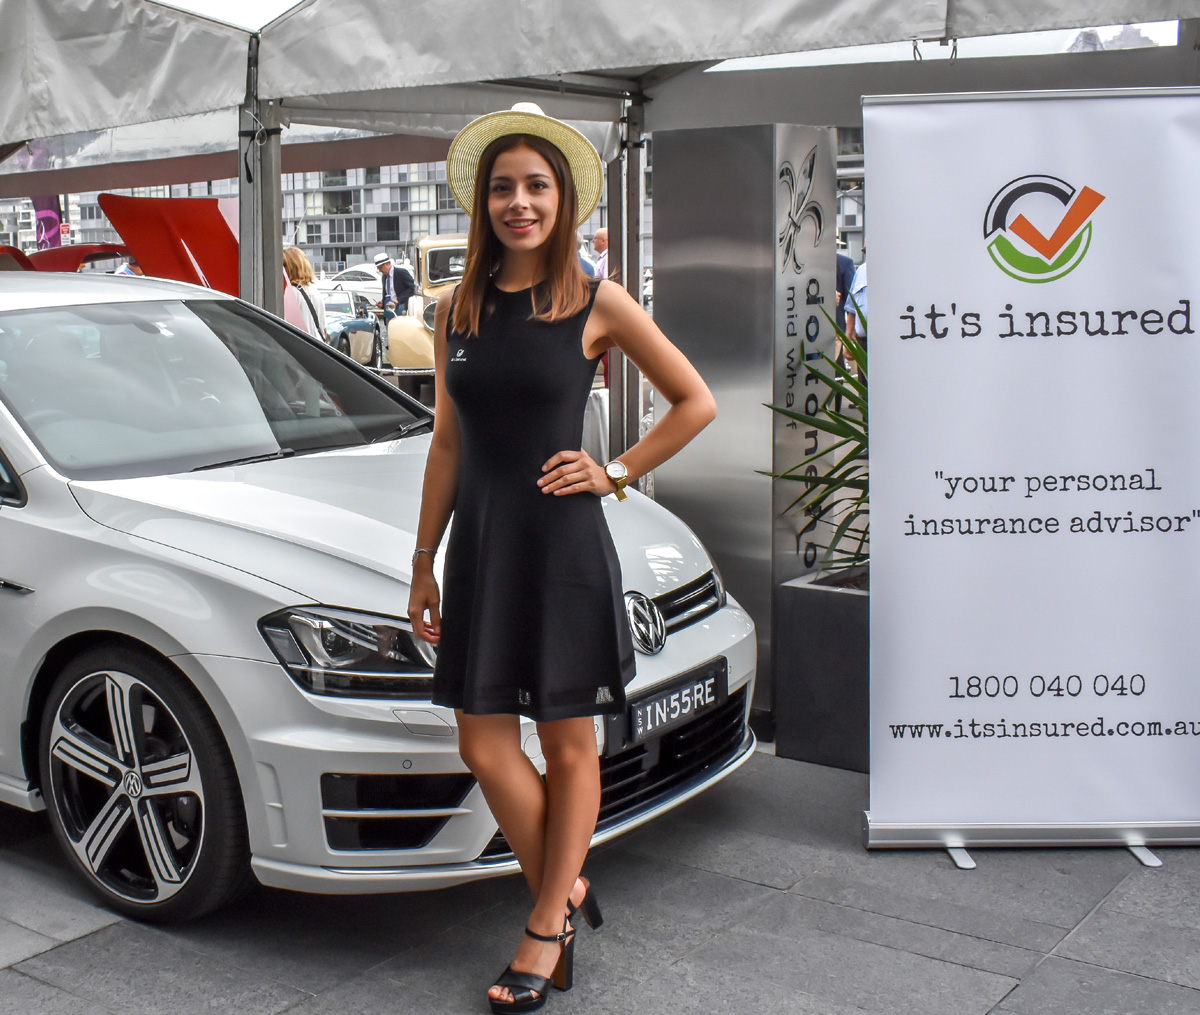 A promotional model posing with a white car